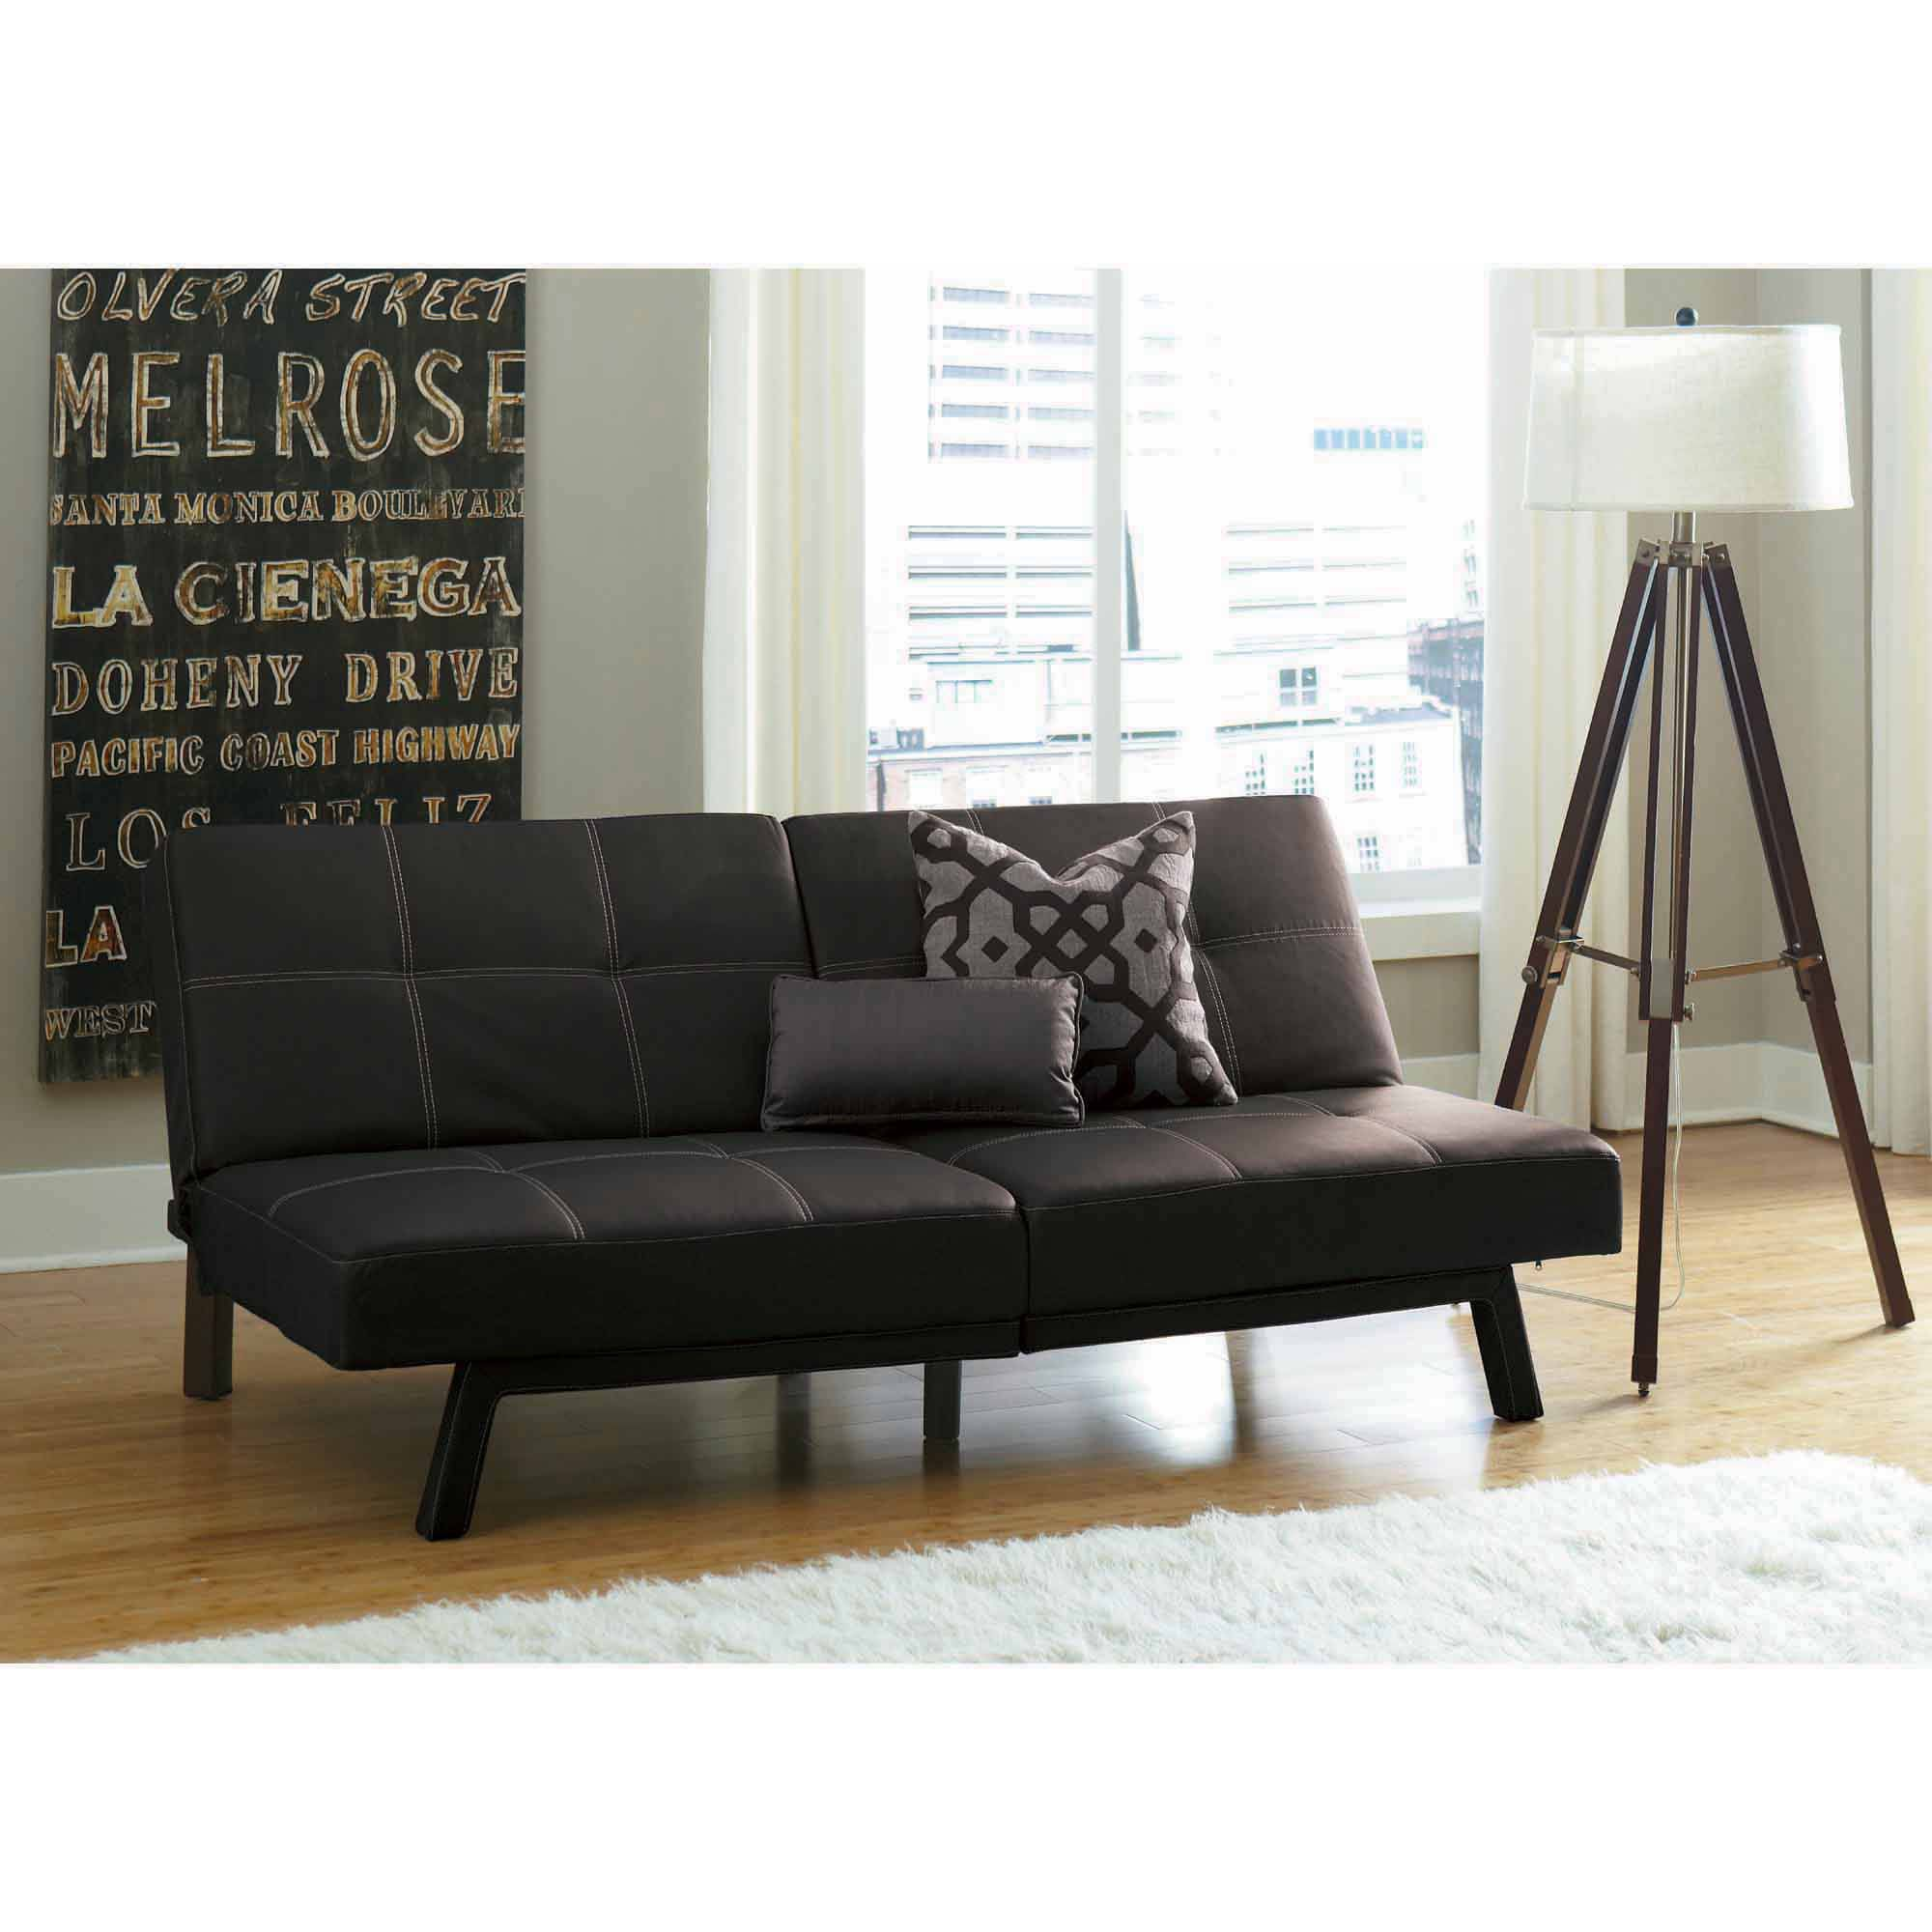 awesome Bed Couch Walmart , Lovely Bed Couch Walmart 74 For Your ...